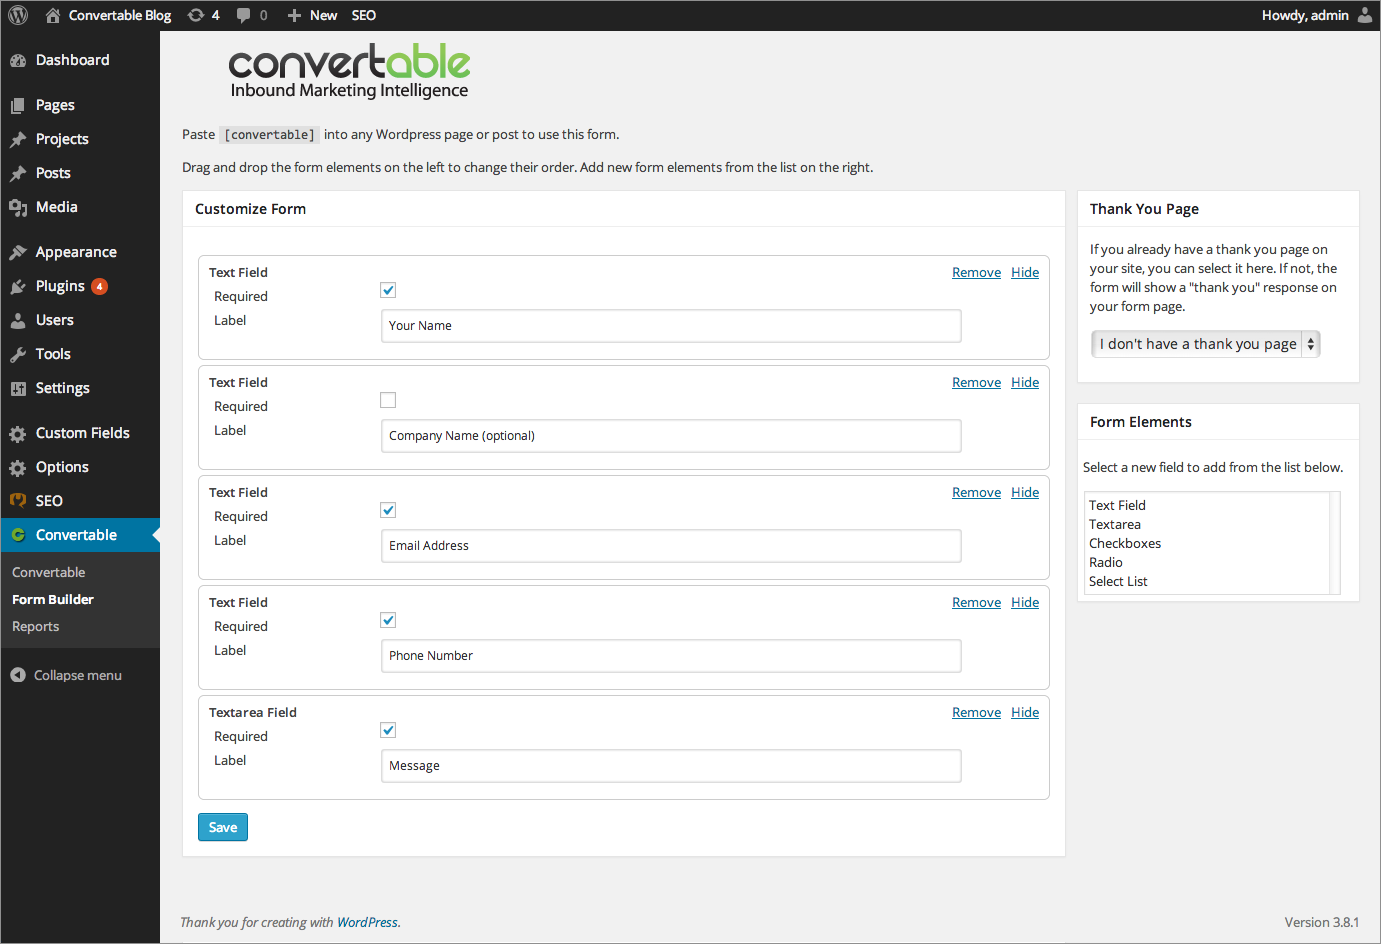 convertable-contact-form-builder-analytics-and-lead-management-dashboard screenshot 1